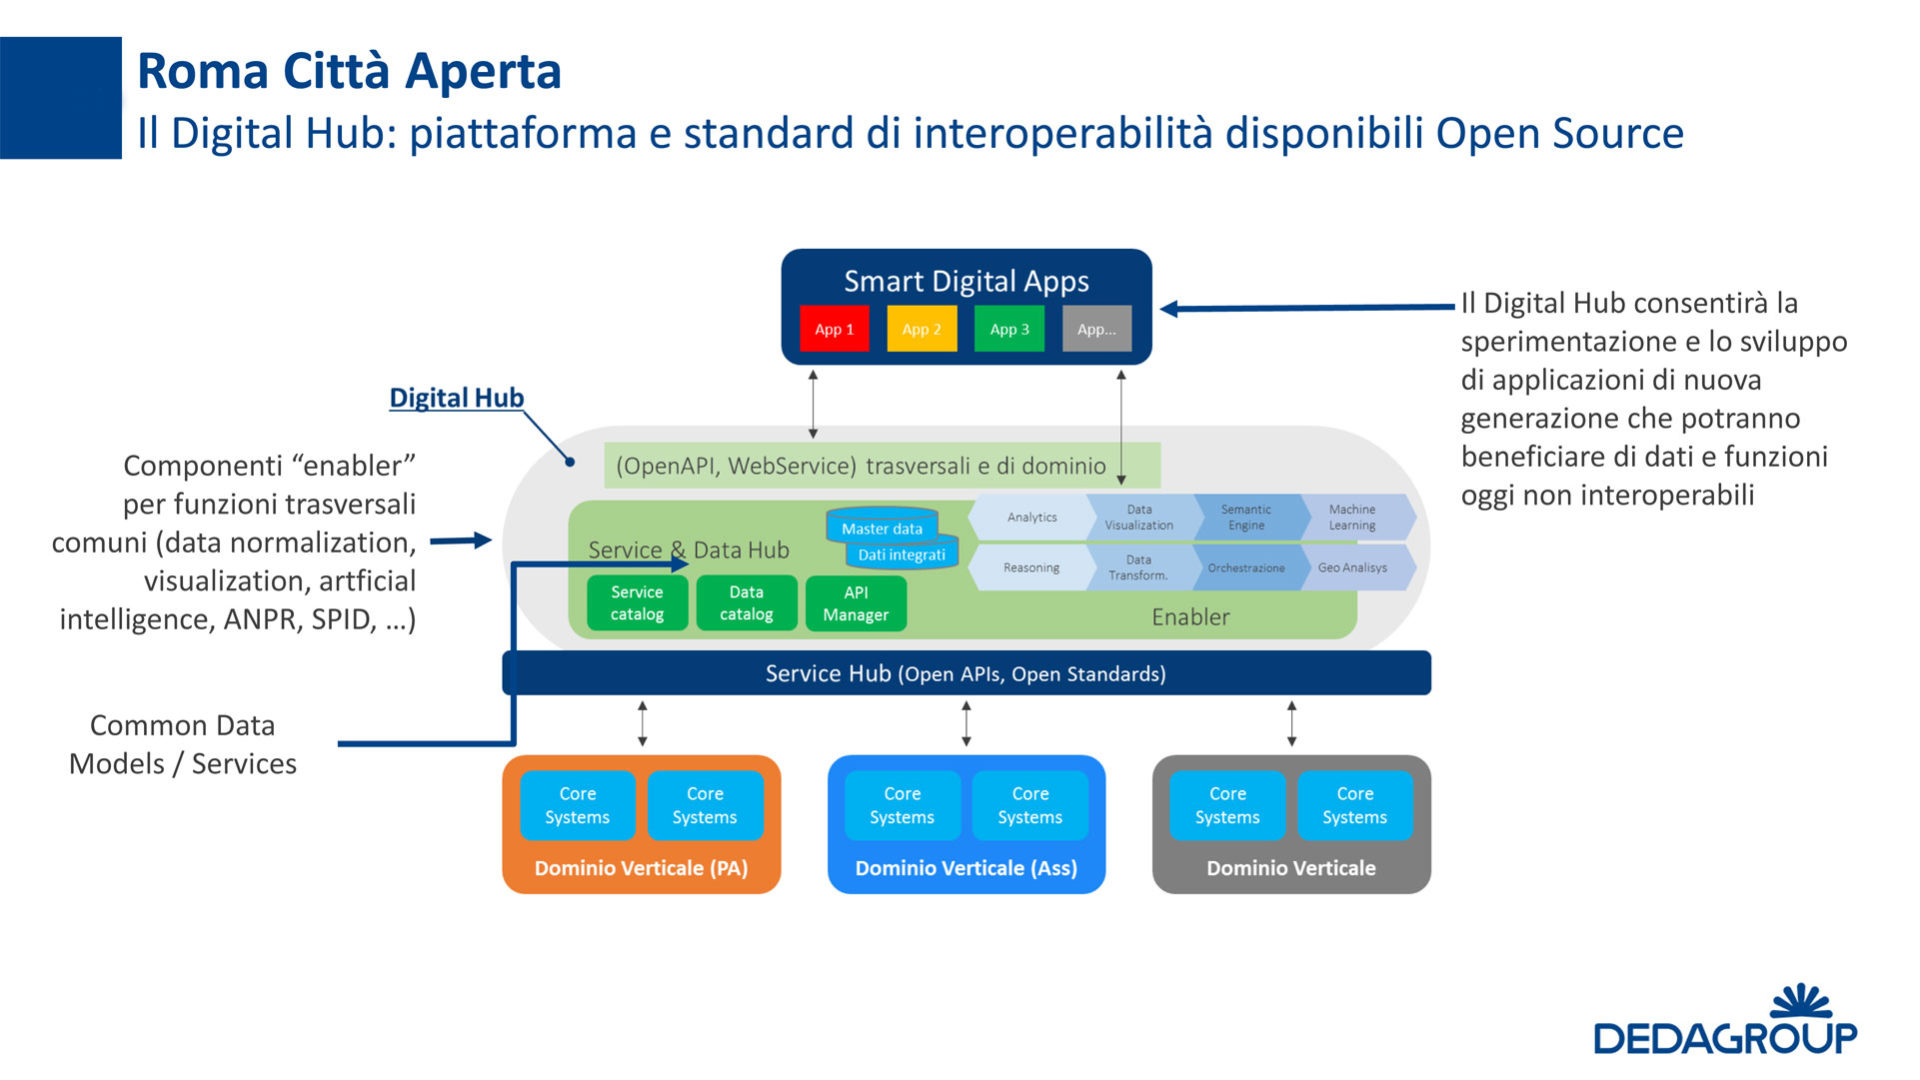 Schema della Piattaforma per l'interoperabilità sviluppata dal Co-innovation Lab di Dedagroup